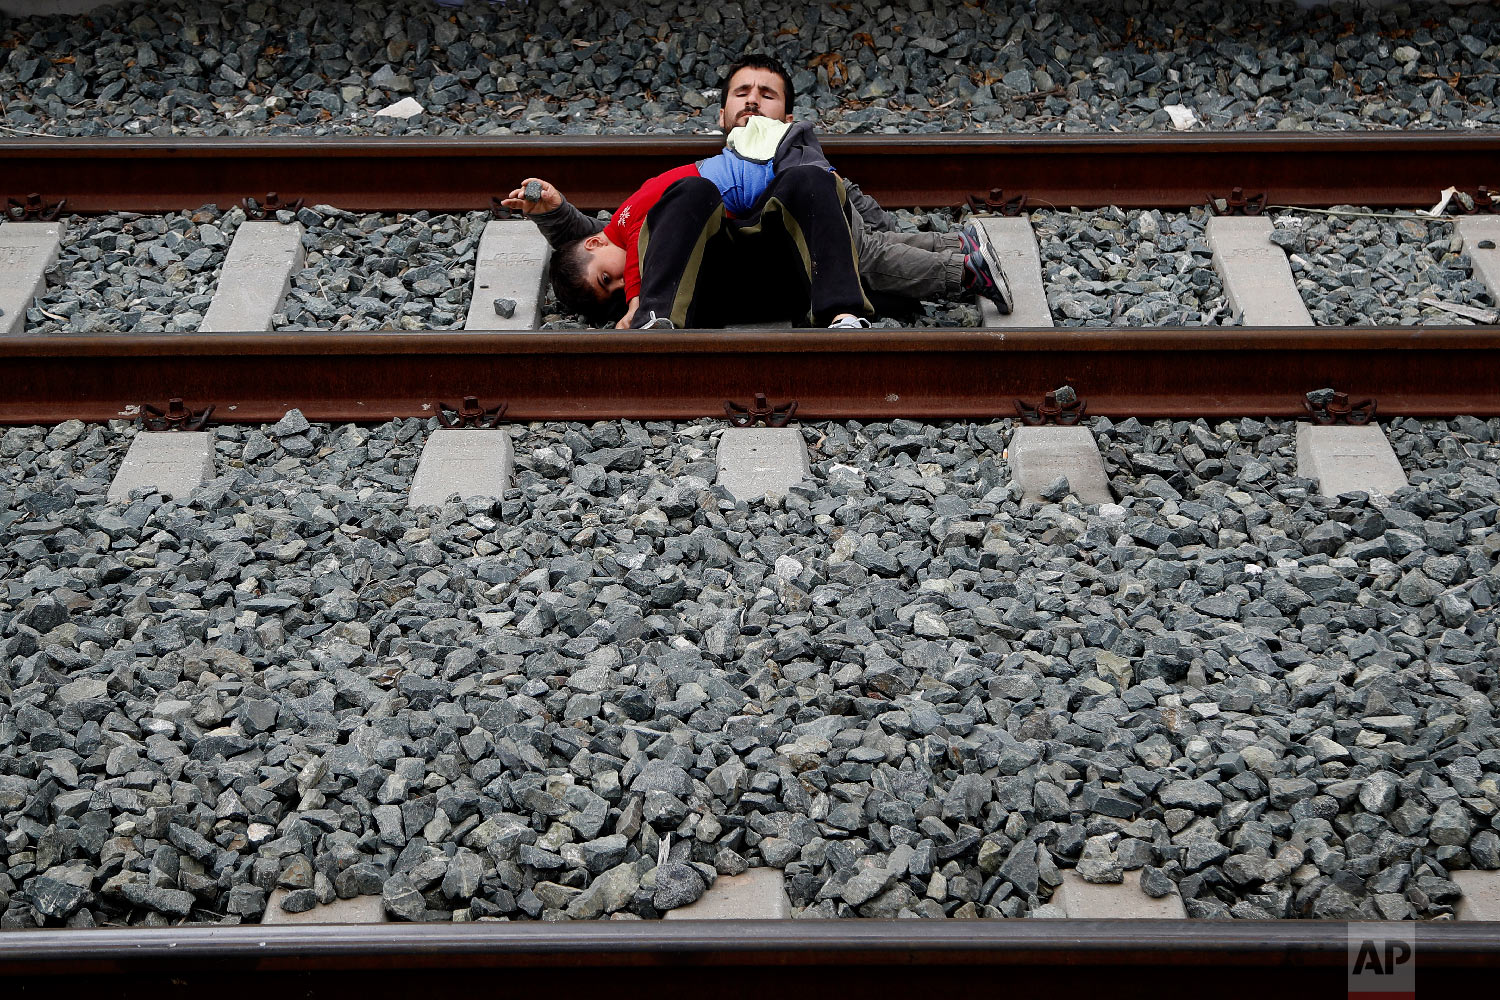 A migrant father with his child lays on the rail tracks at Larissis main rail station in Athens, Friday, April 5, 2019. (AP Photo/Thanassis Stavrakis)